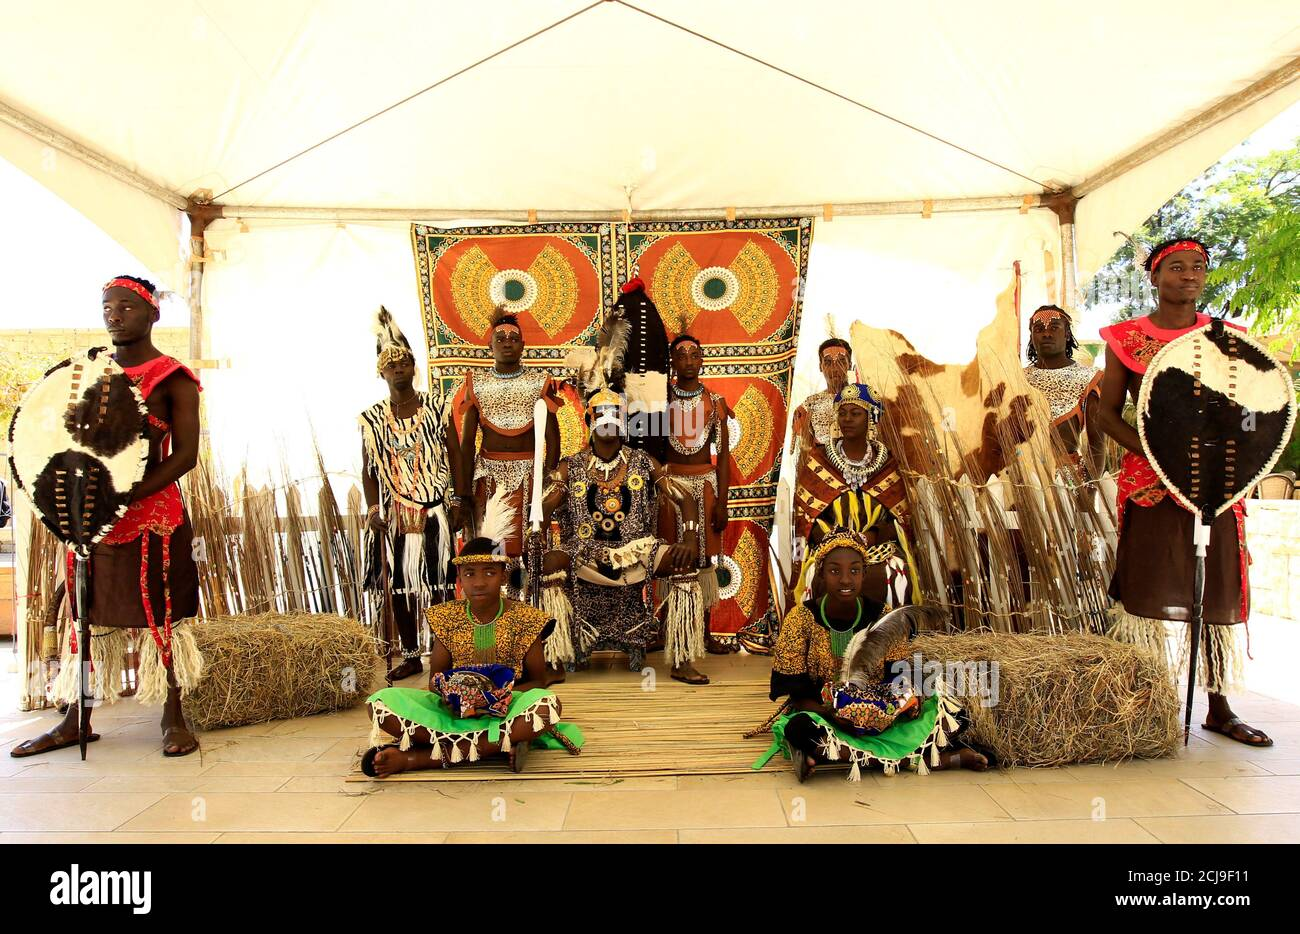 Cast Members Of The Utamaduni Ngoma Dance Group Perform The African King S Journey To Christmas Play In Nairobi Kenya December 19 2019 Reuters Njeri Mwangi Stock Photo Alamy